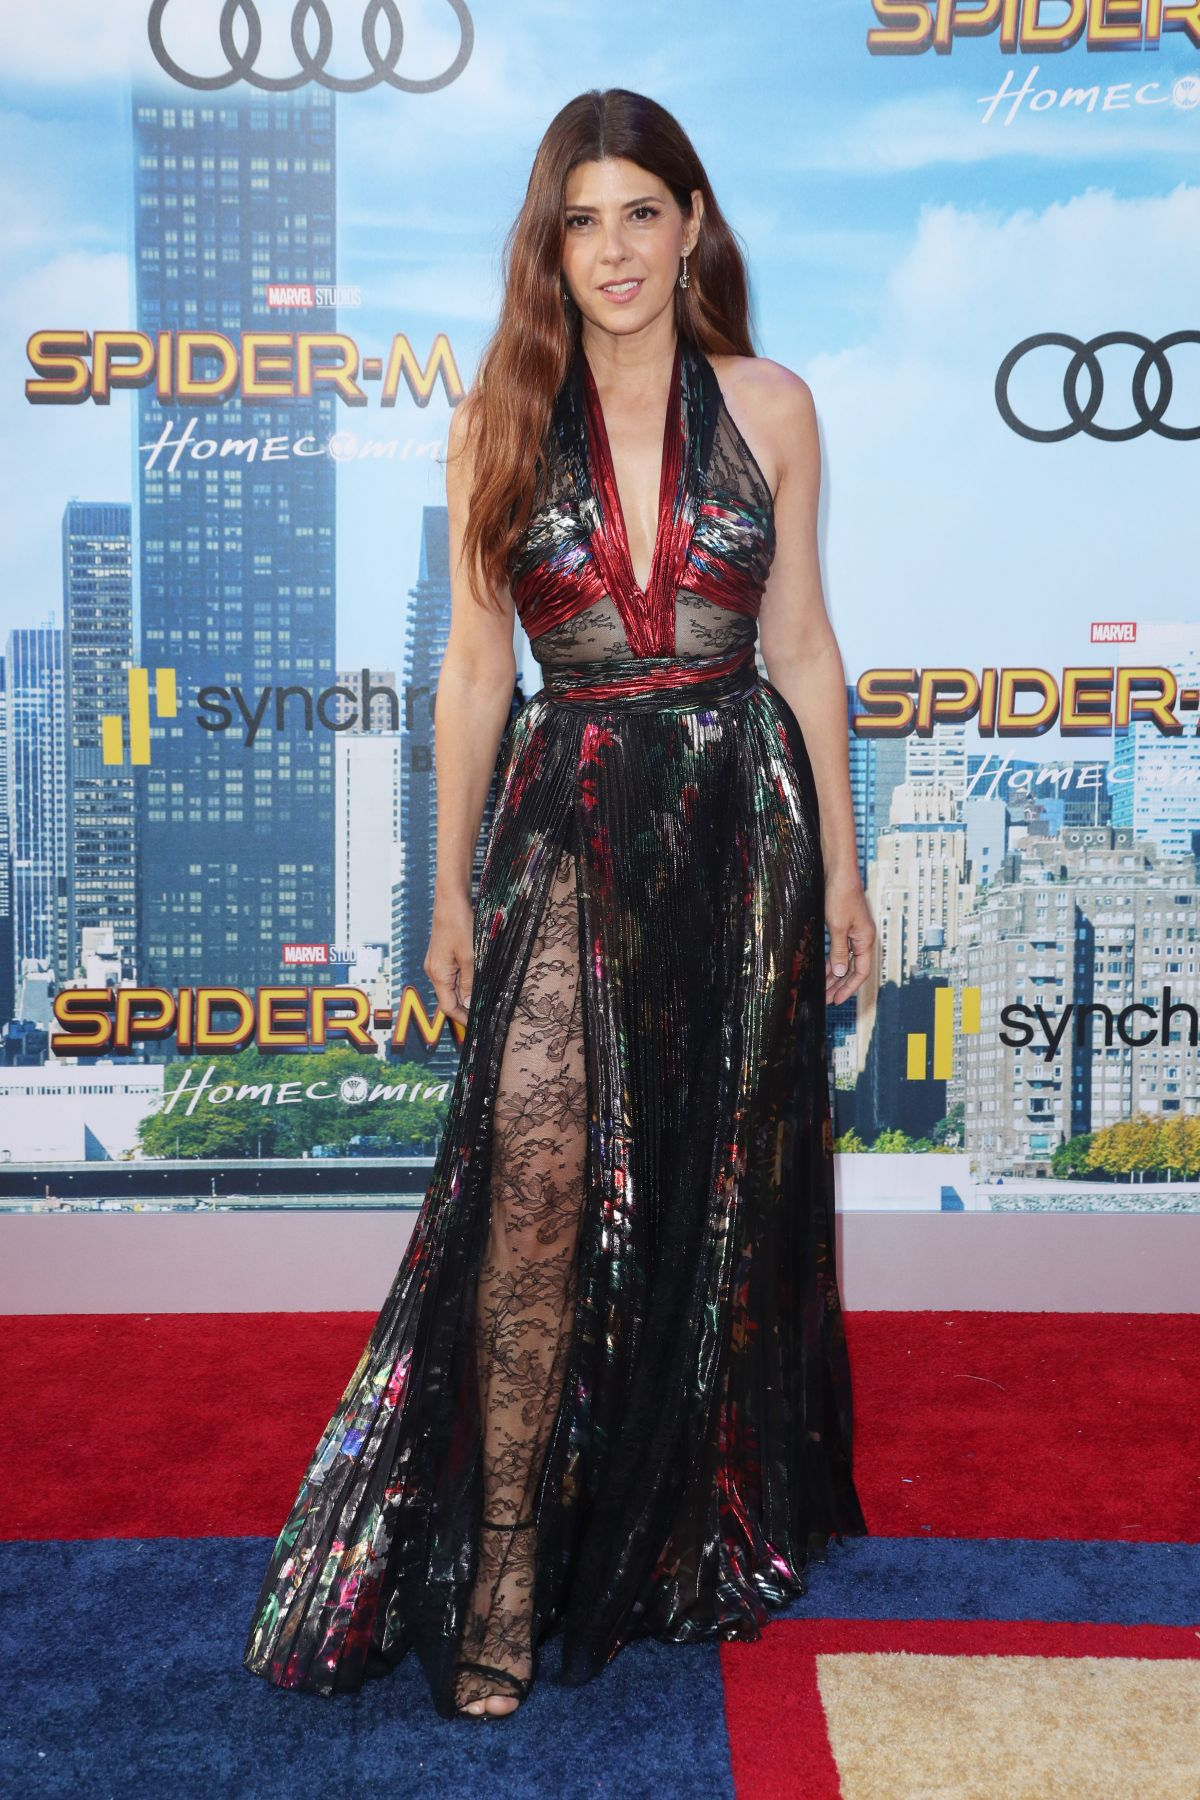 MARISA TOMEI at Spiderman: Homecoming Premiere in Los Angeles 06/28/2017